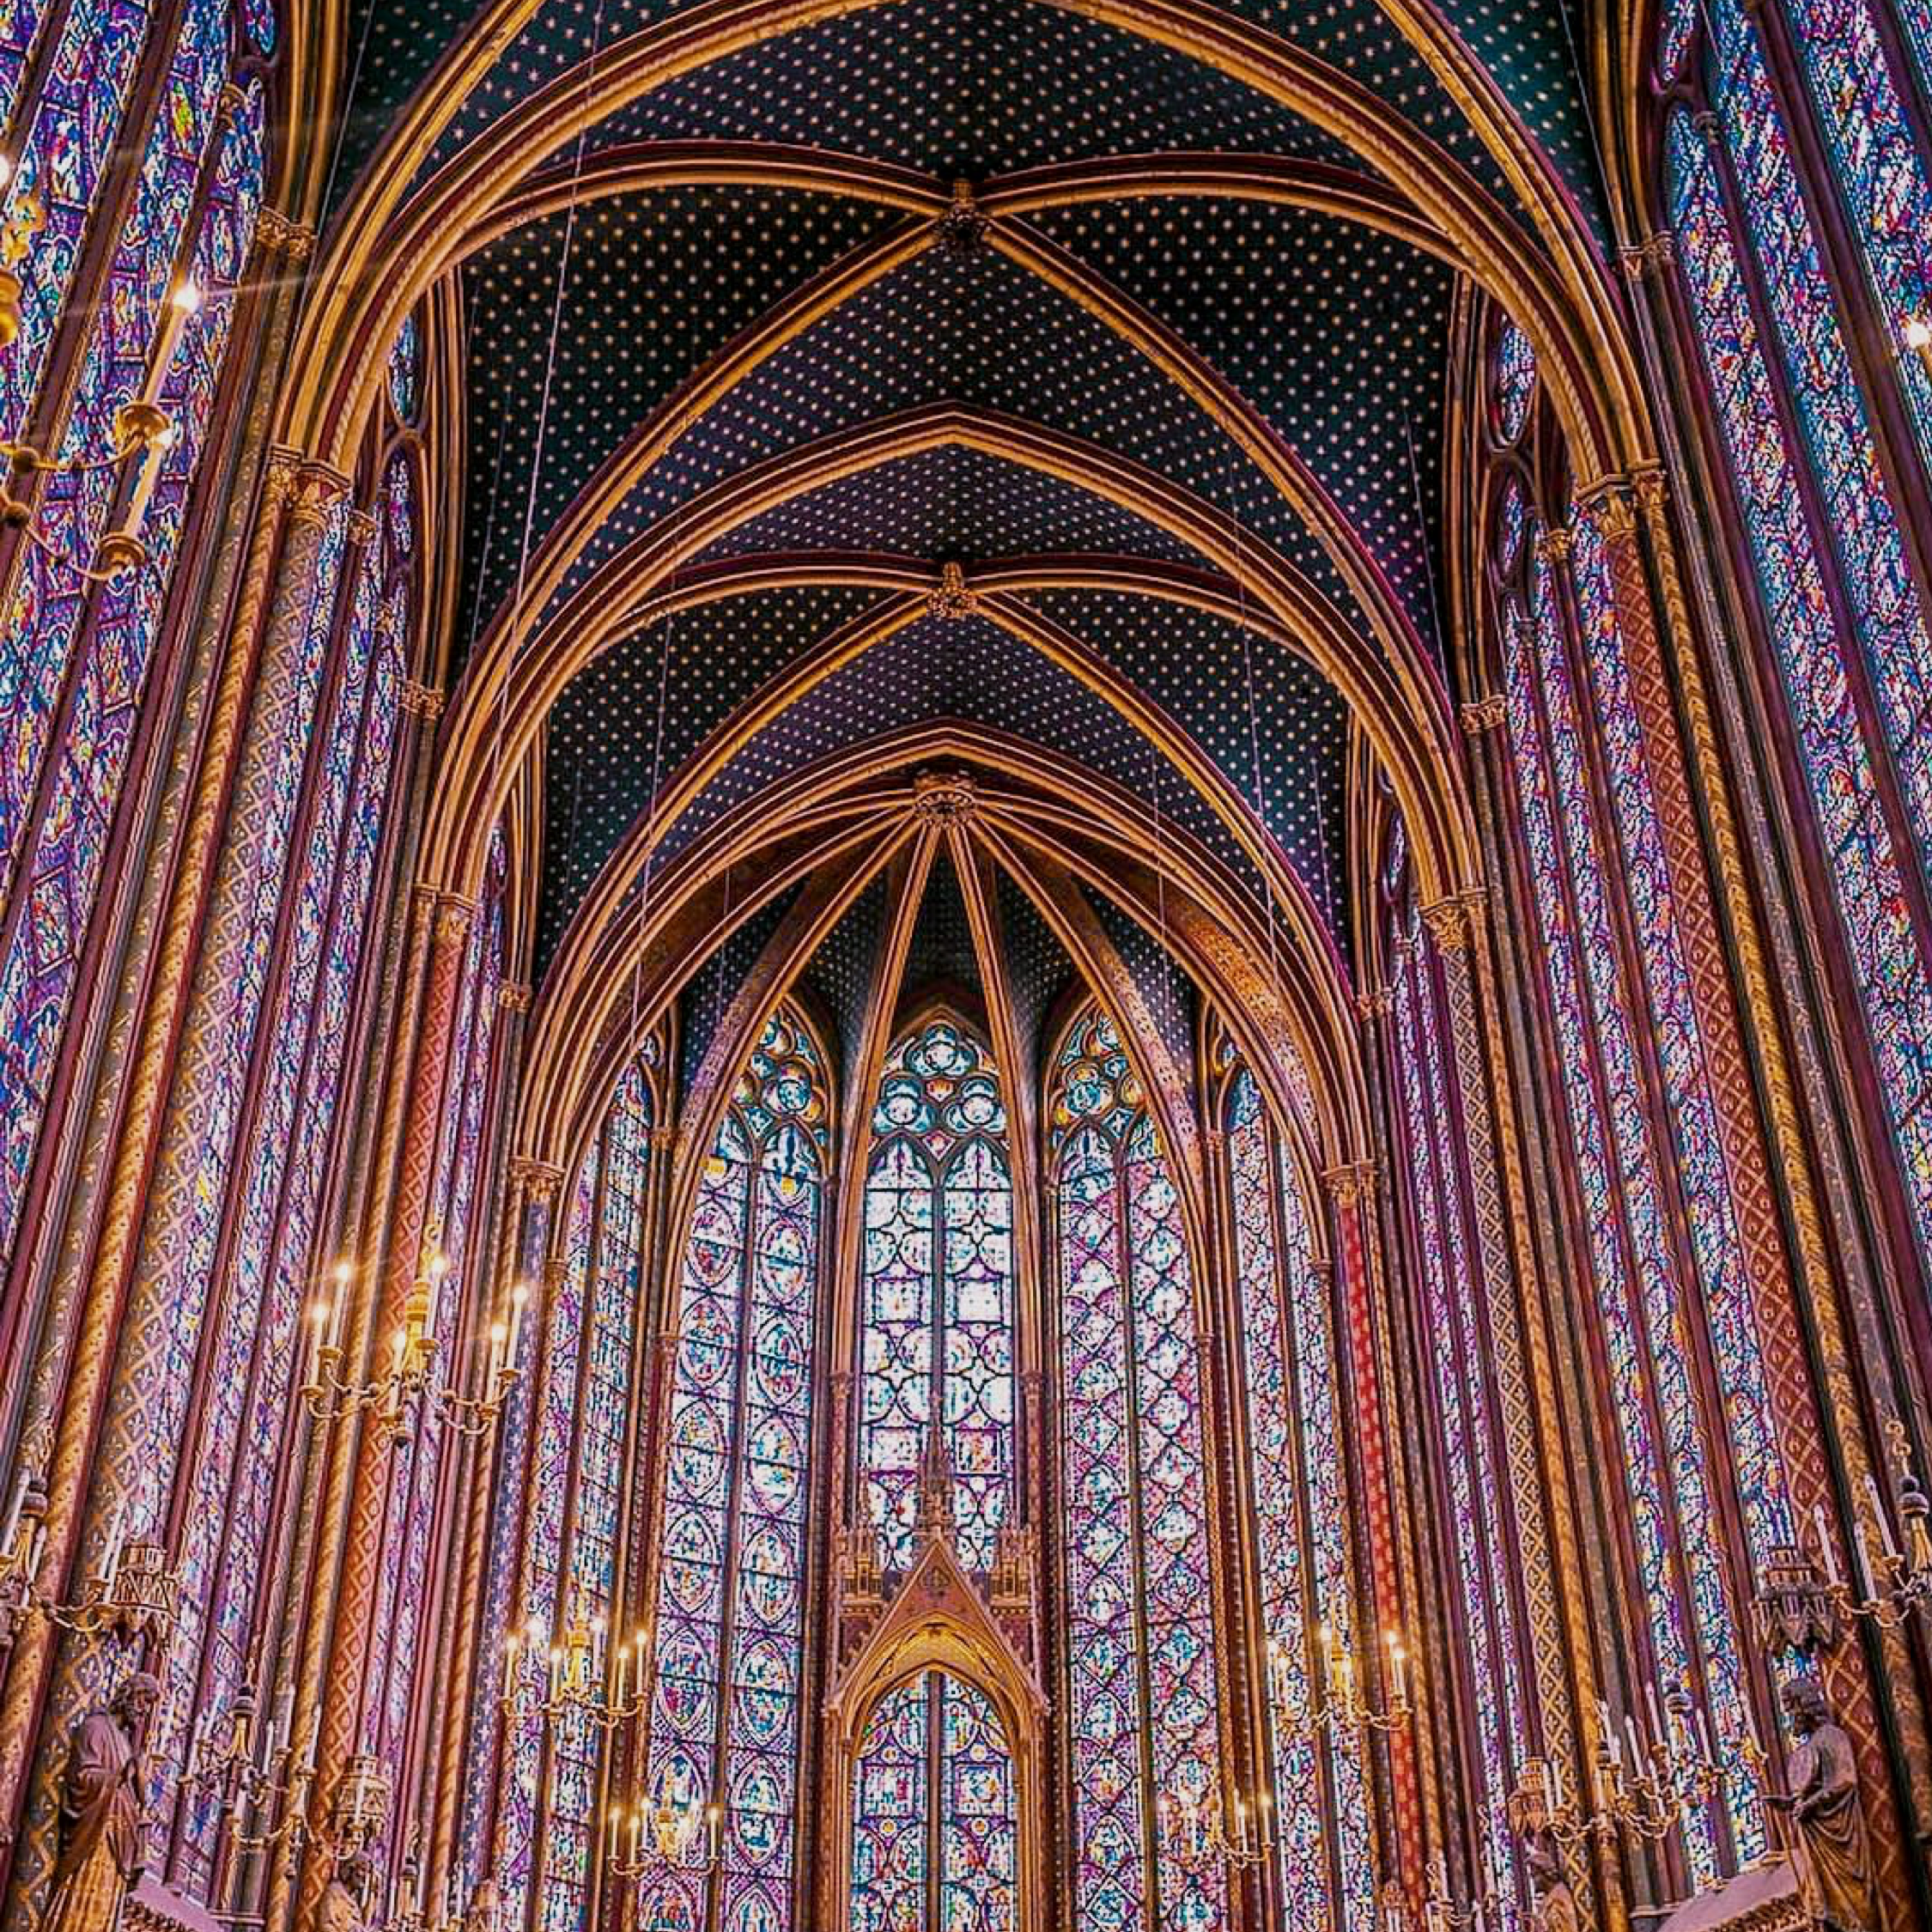 SAINTE-CHAPELLE - A true wonder of the world – join Bernard and Katharine as we explore the famous medieval chapel, feast on the sublime stained glass interior, and discover the Palais de la Cité, which has been at the heart of the French judicial system since the Roman era.Duration: 30 minutesDistance: 0.5 kmOpening hours: 9.30am – 18.00pmEntrance: 10€